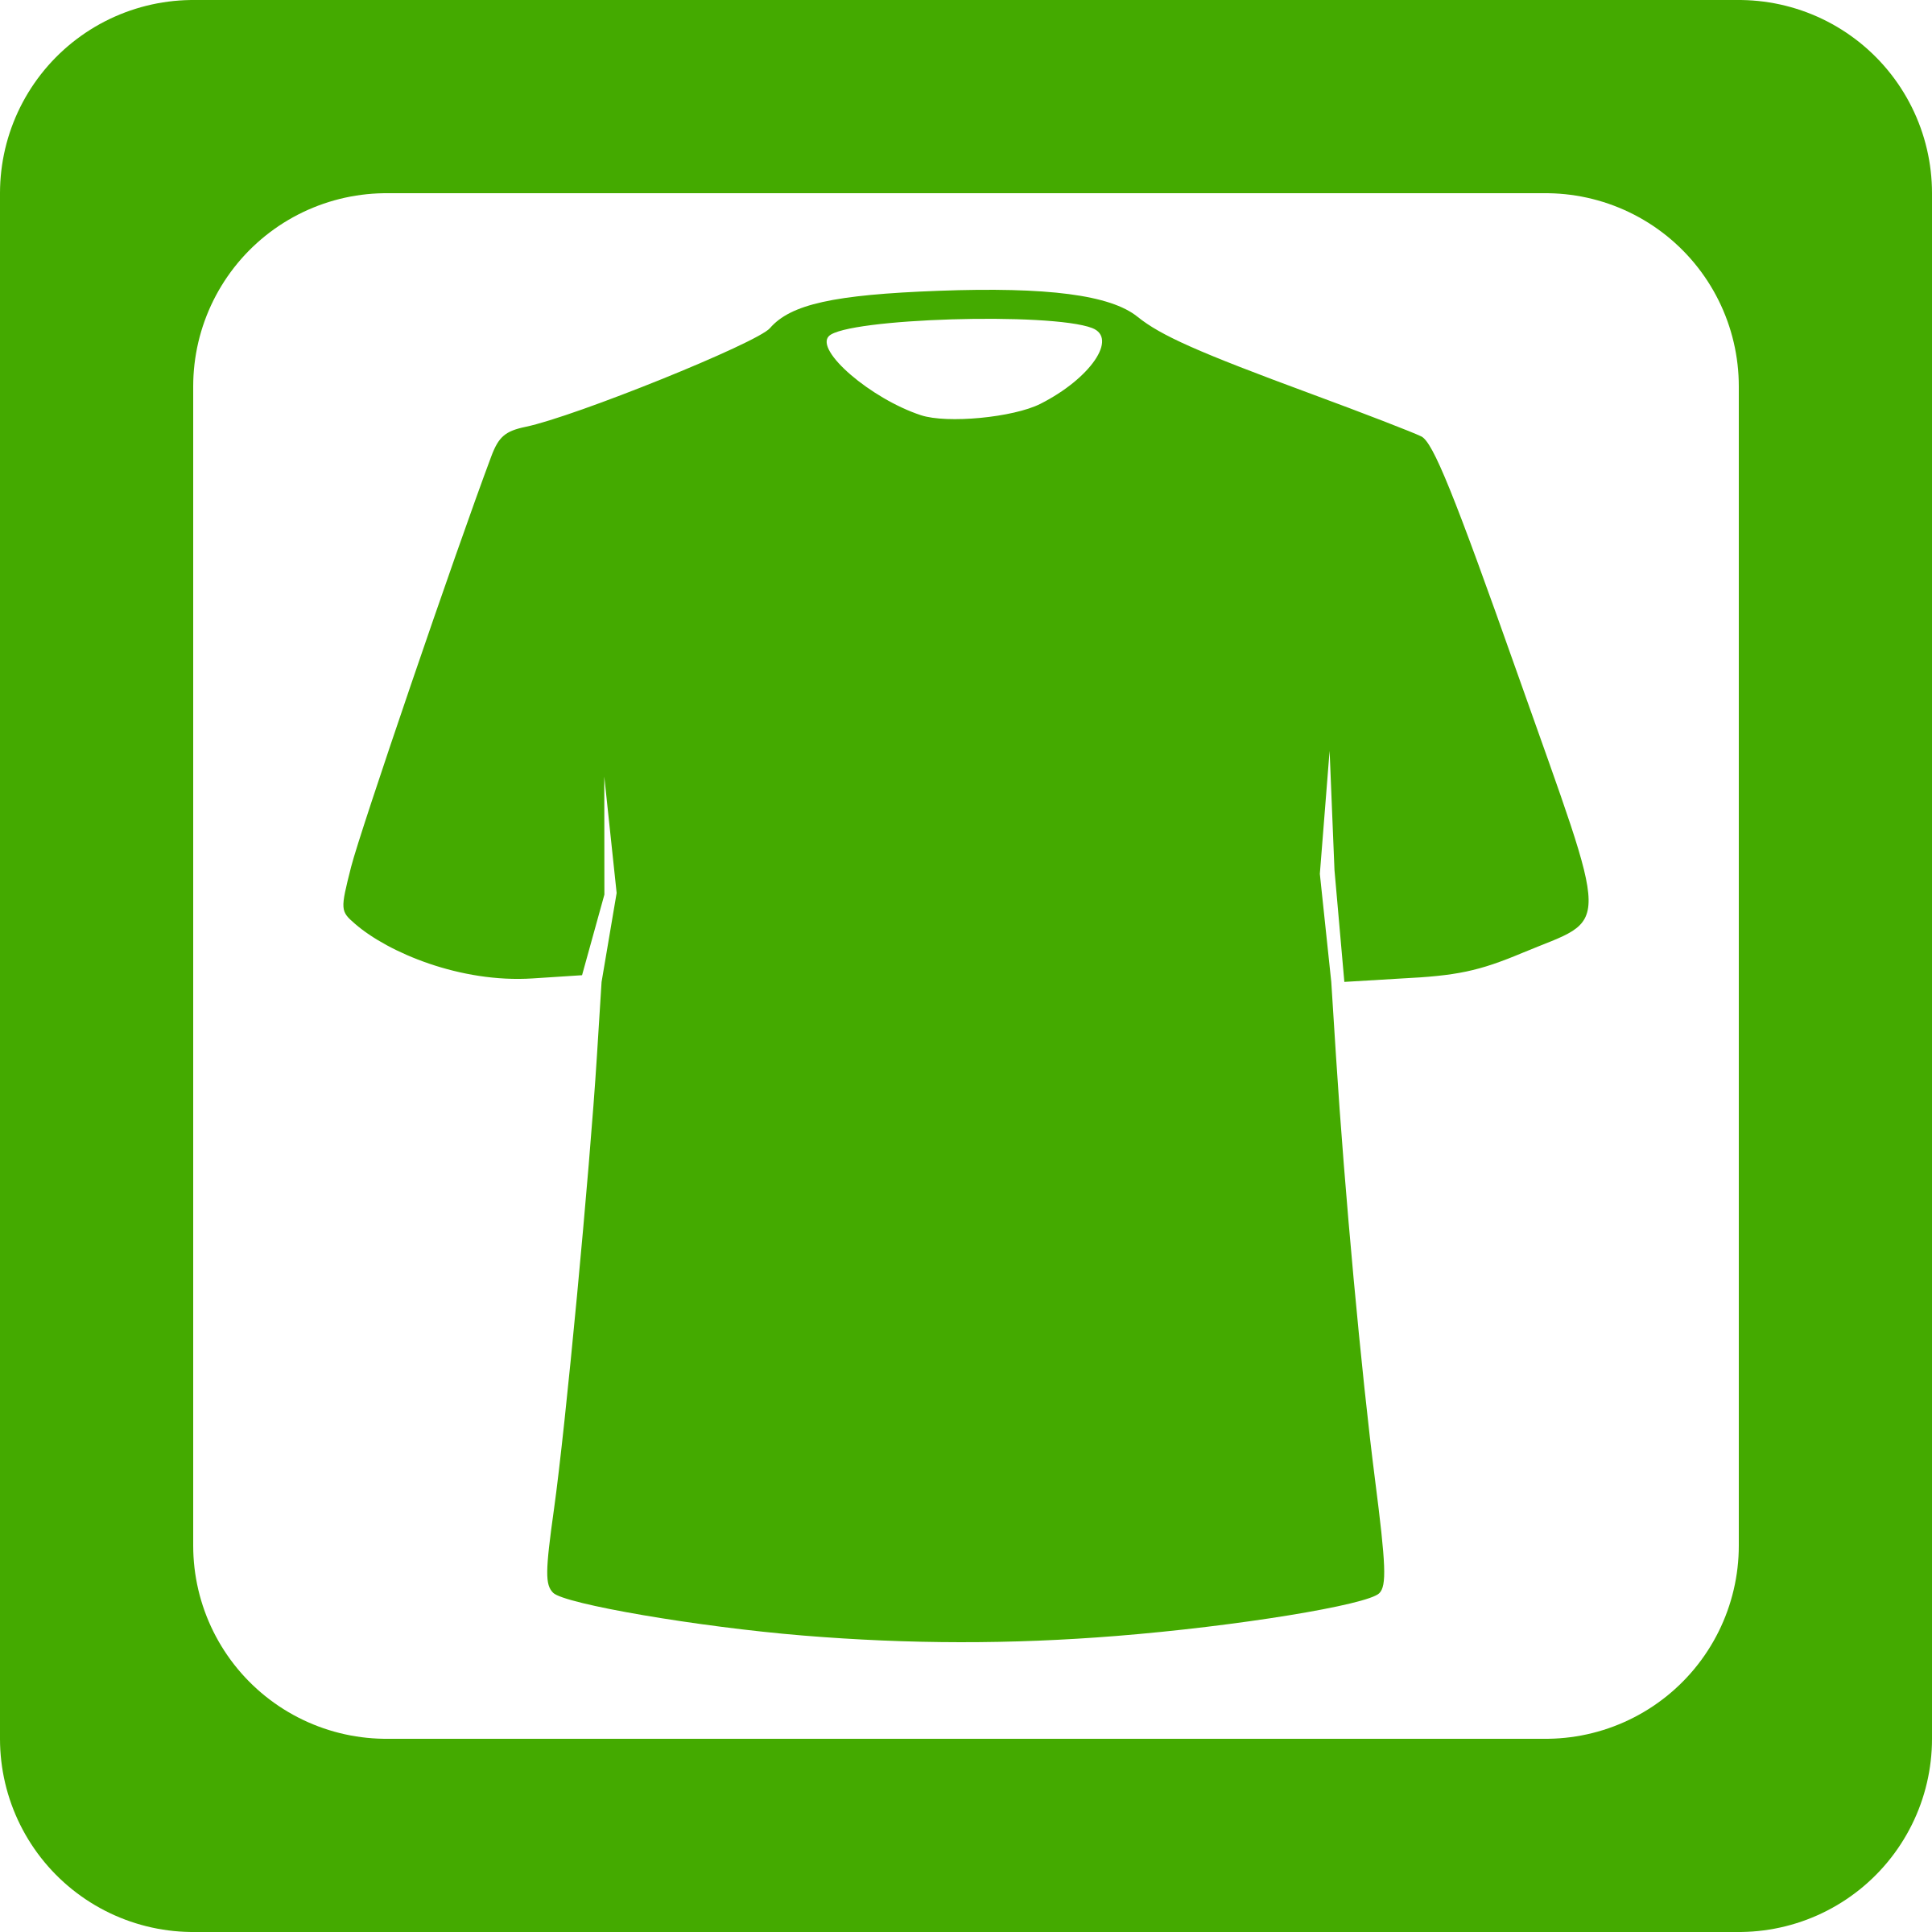 Green Clothing Icon by LeonH